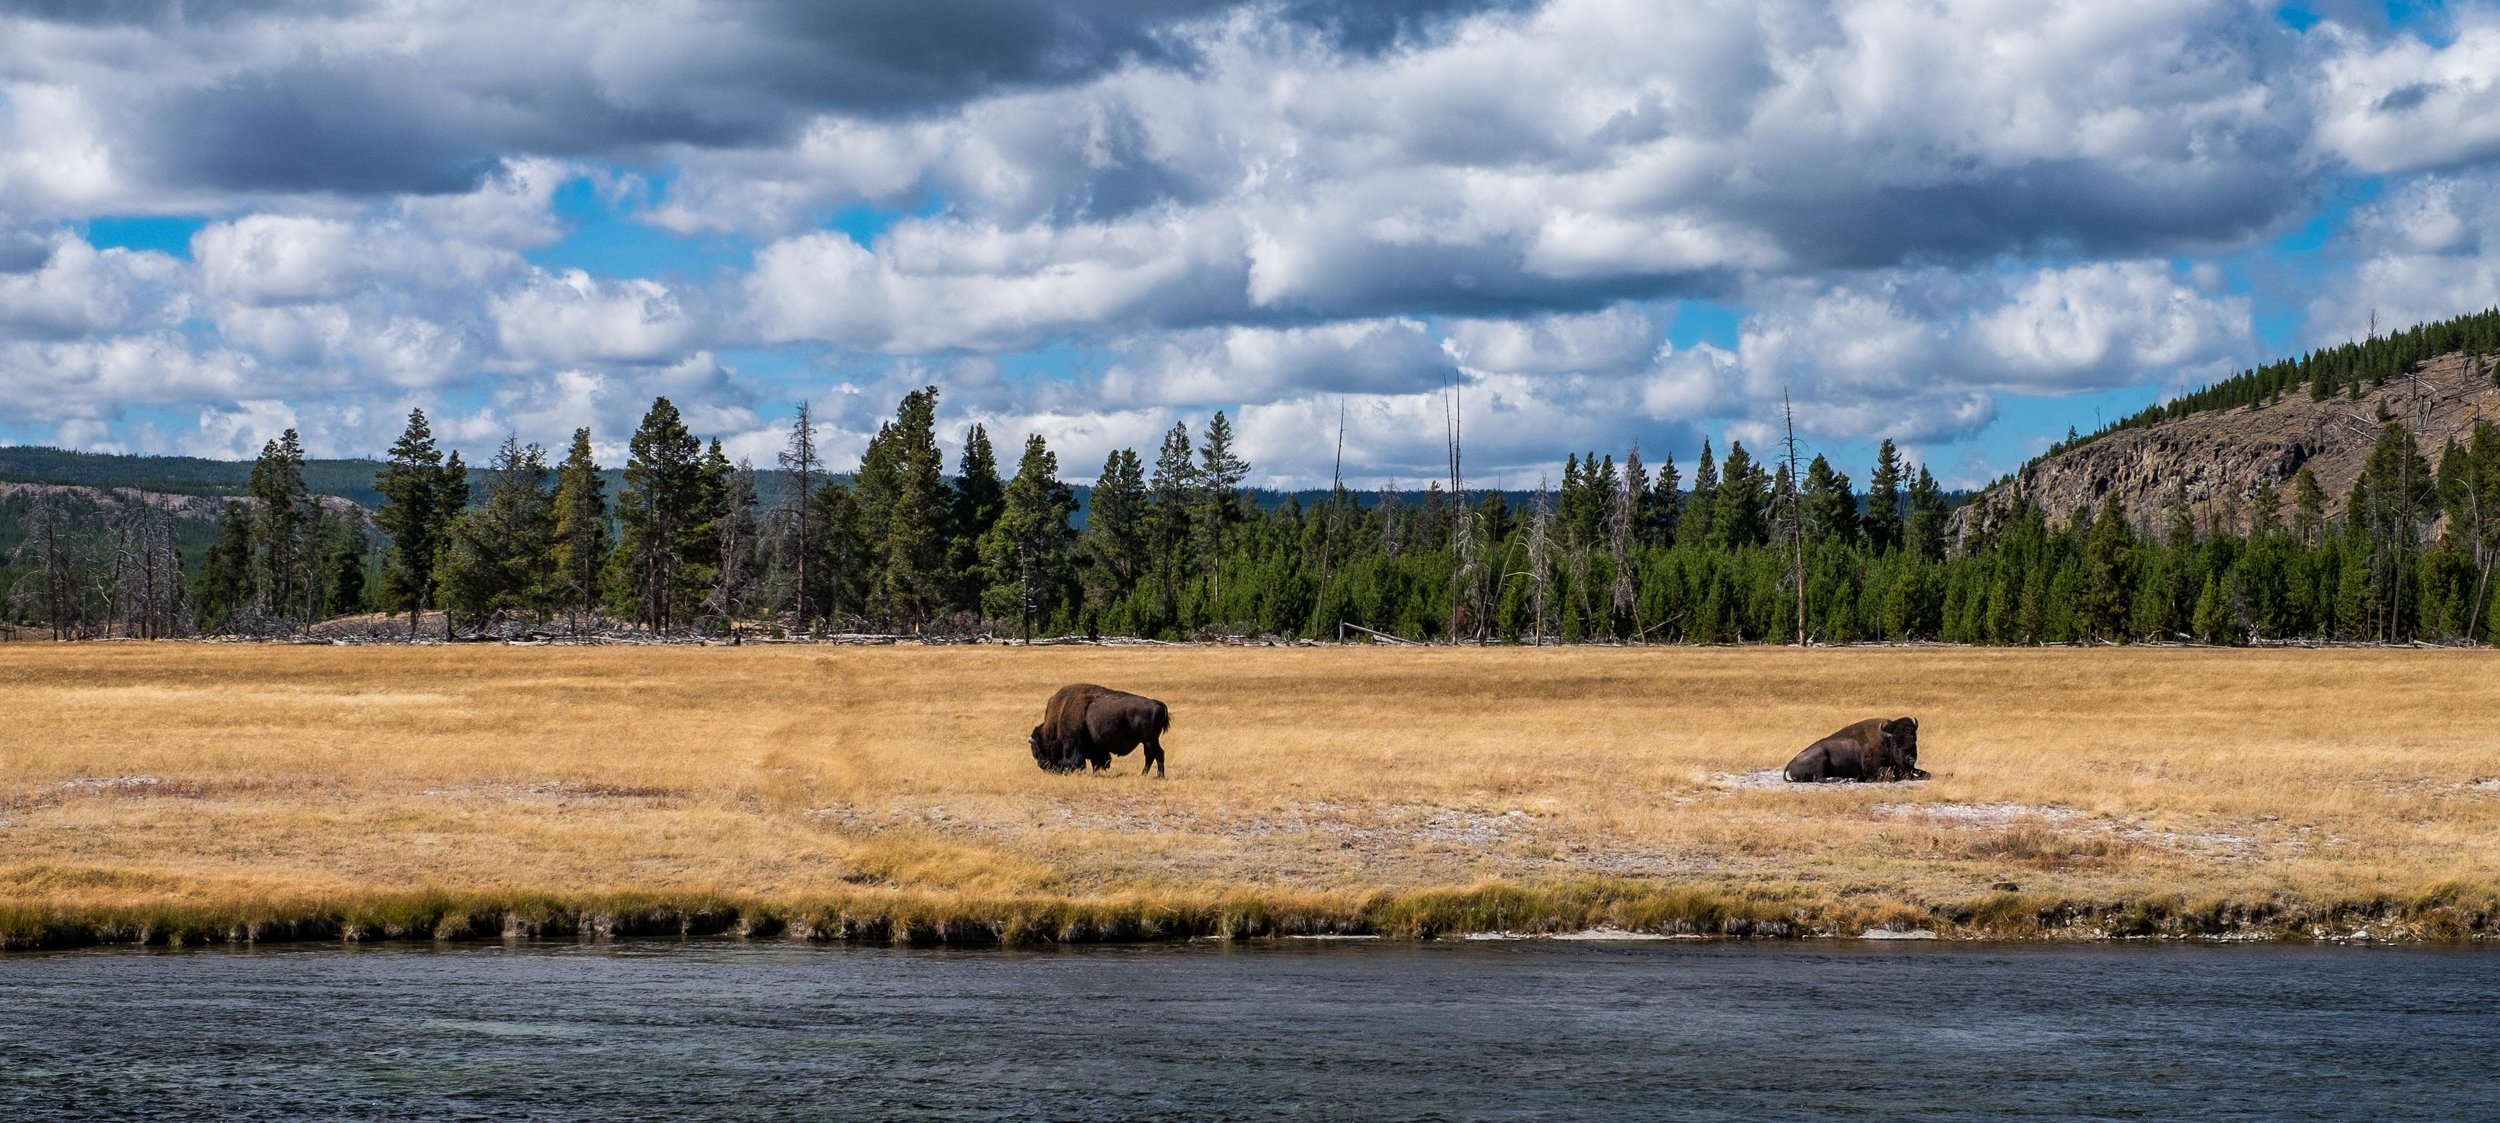 The American Bison is synonymous with Yellowstone National Park.